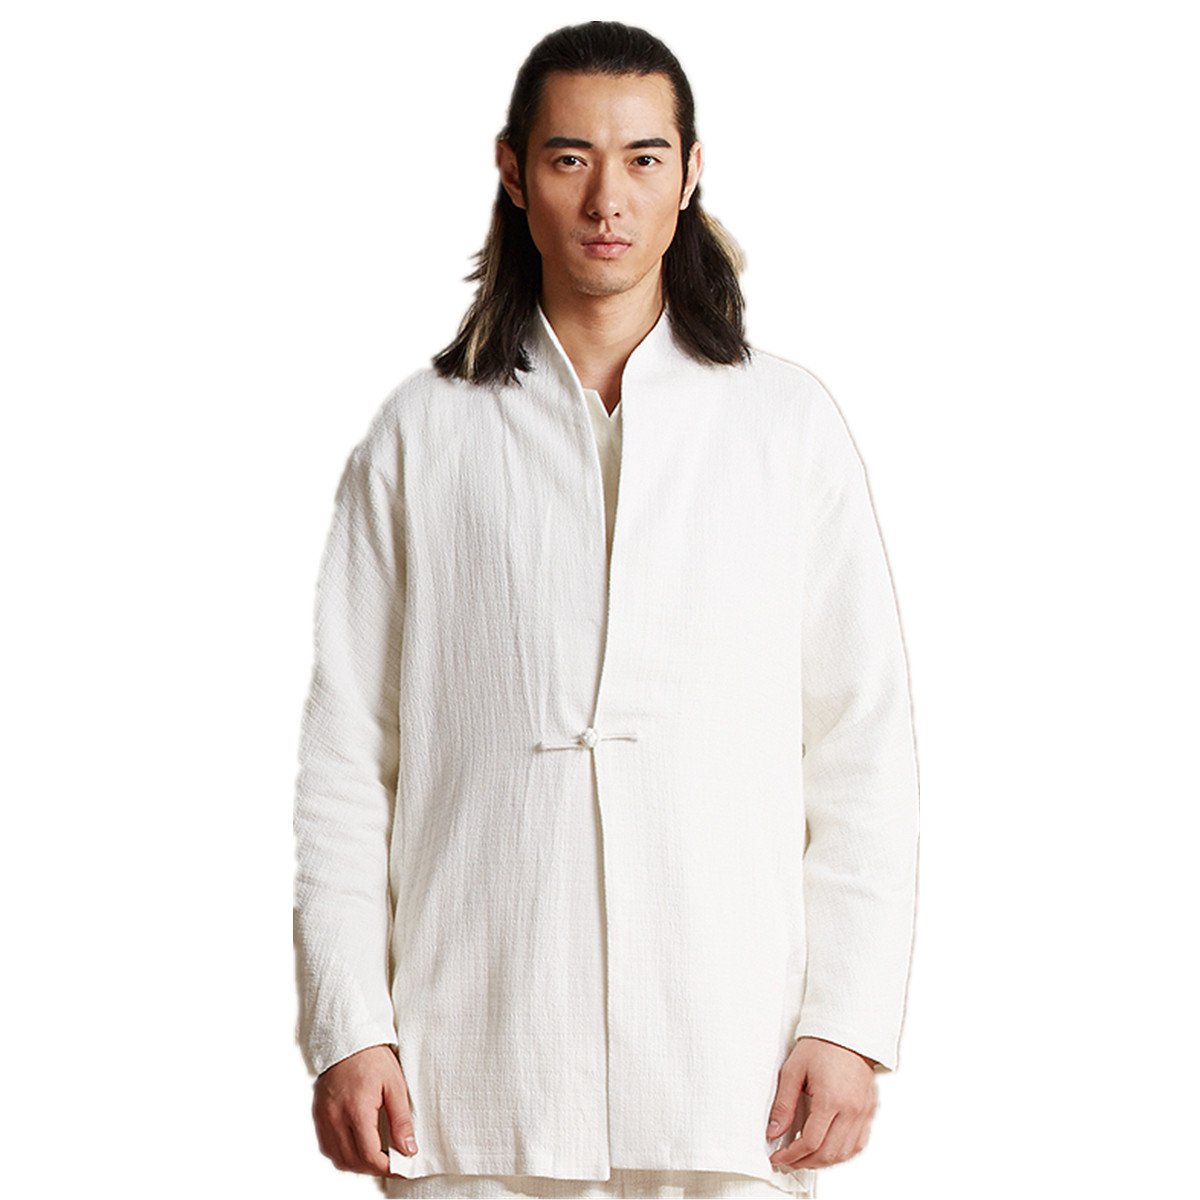 WEISAN Mens Japan Traditional Jacket Cotton Linen Spring Autumn Kung Fu Costume